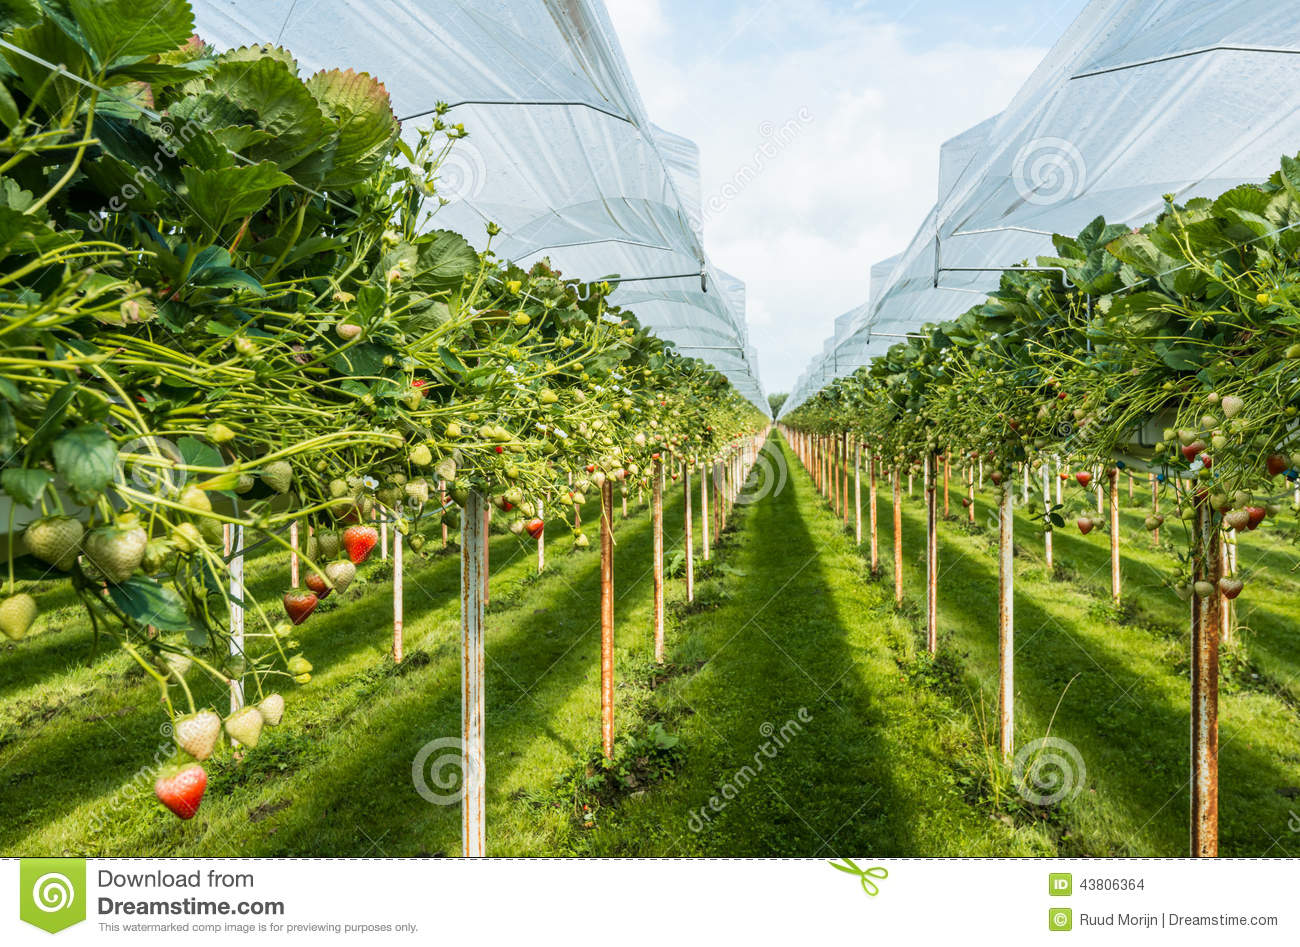 Strawberry Cultivation Outdoors Stock Photo Image Of Complex Morin Outdoor Substrate Strawberries Under Plastic Film On A For The Pickers Ergonomic Height